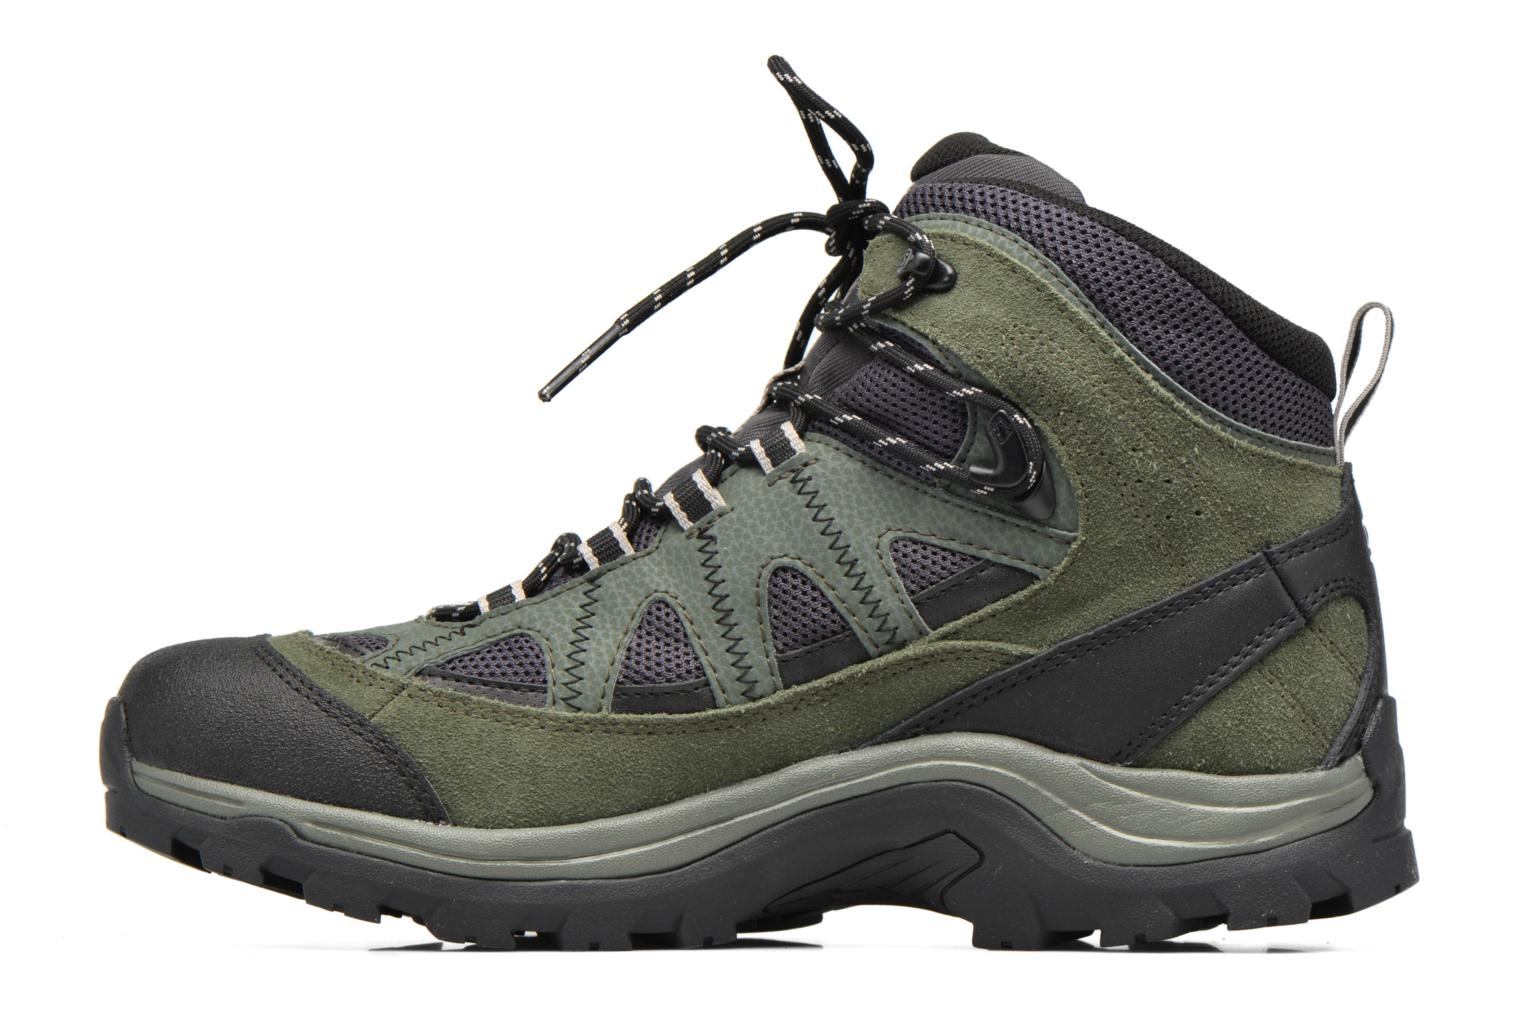 Zapatillas de deporte Salomon Authentic LTR GTX Verde vista de frente